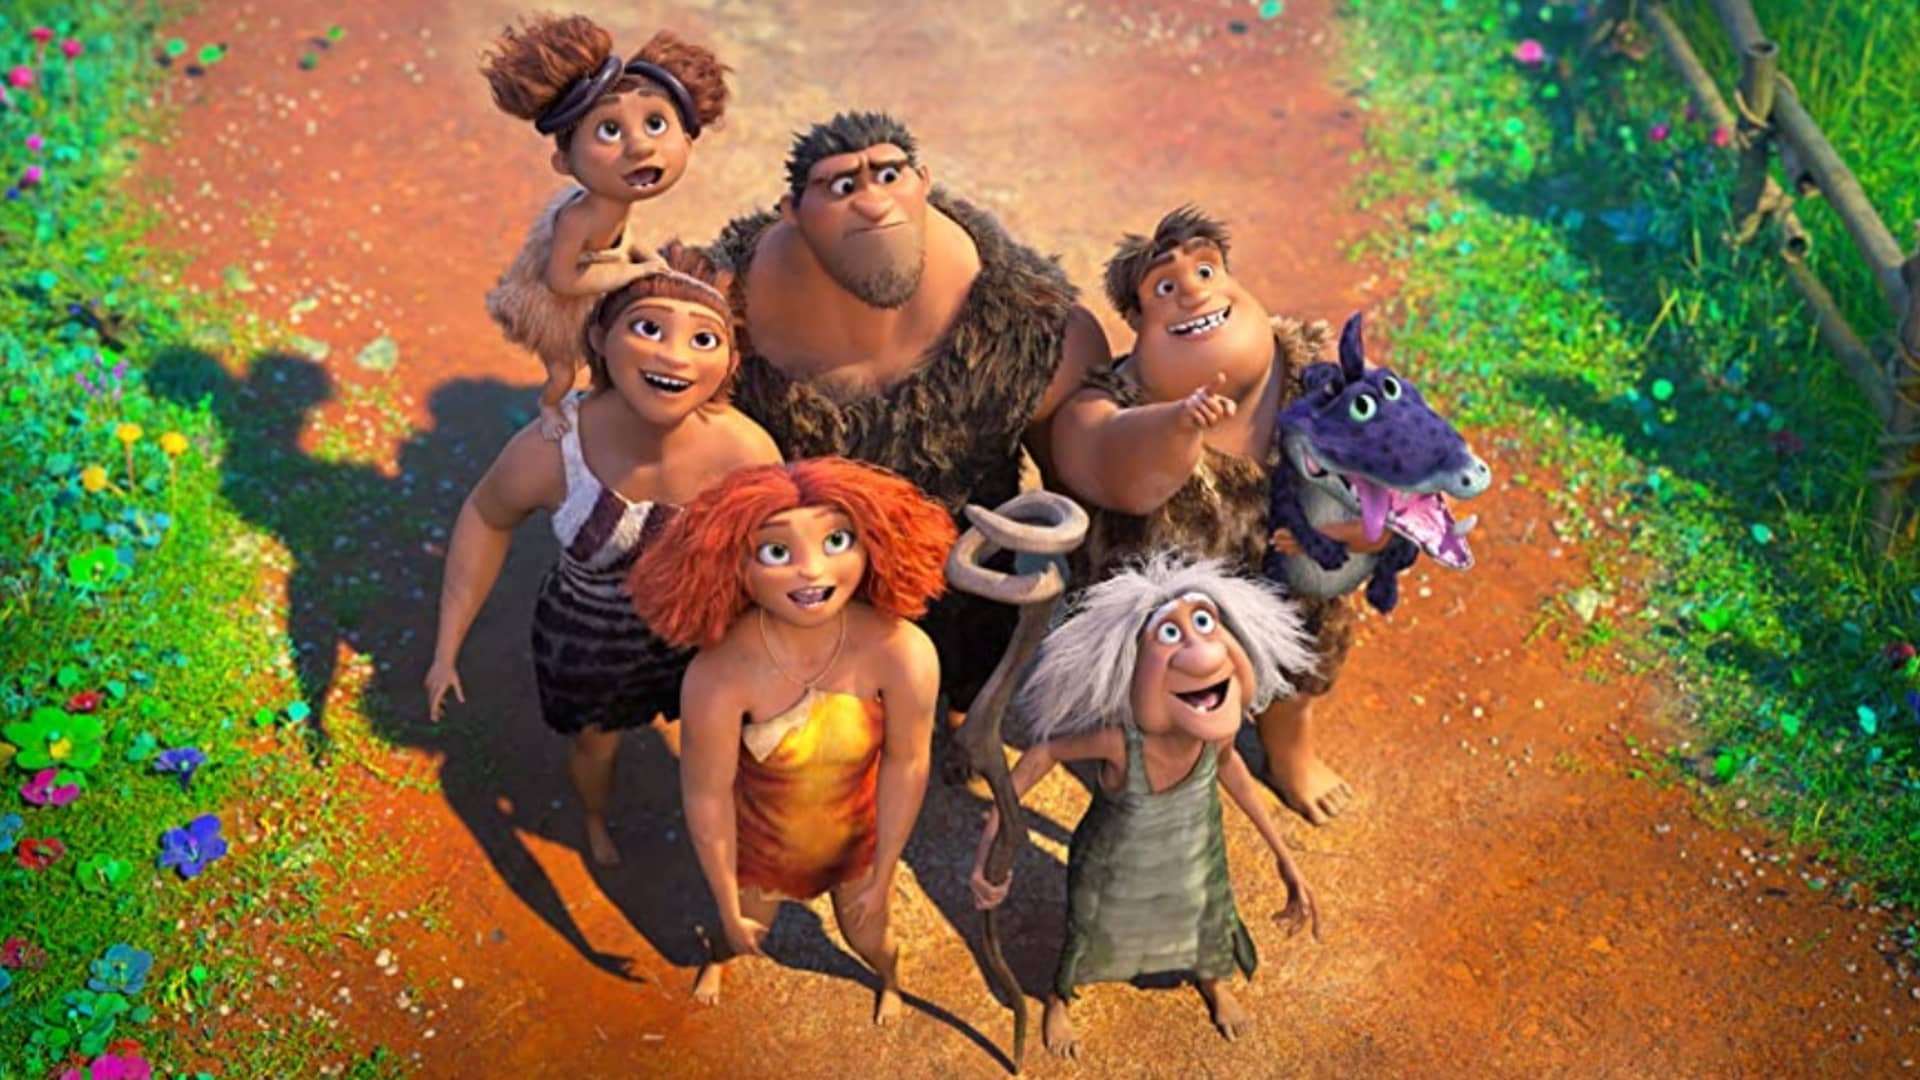 The prehistoric family the Croods are challenged by a rival family the Bettermans, who claim to be better and more evolved.